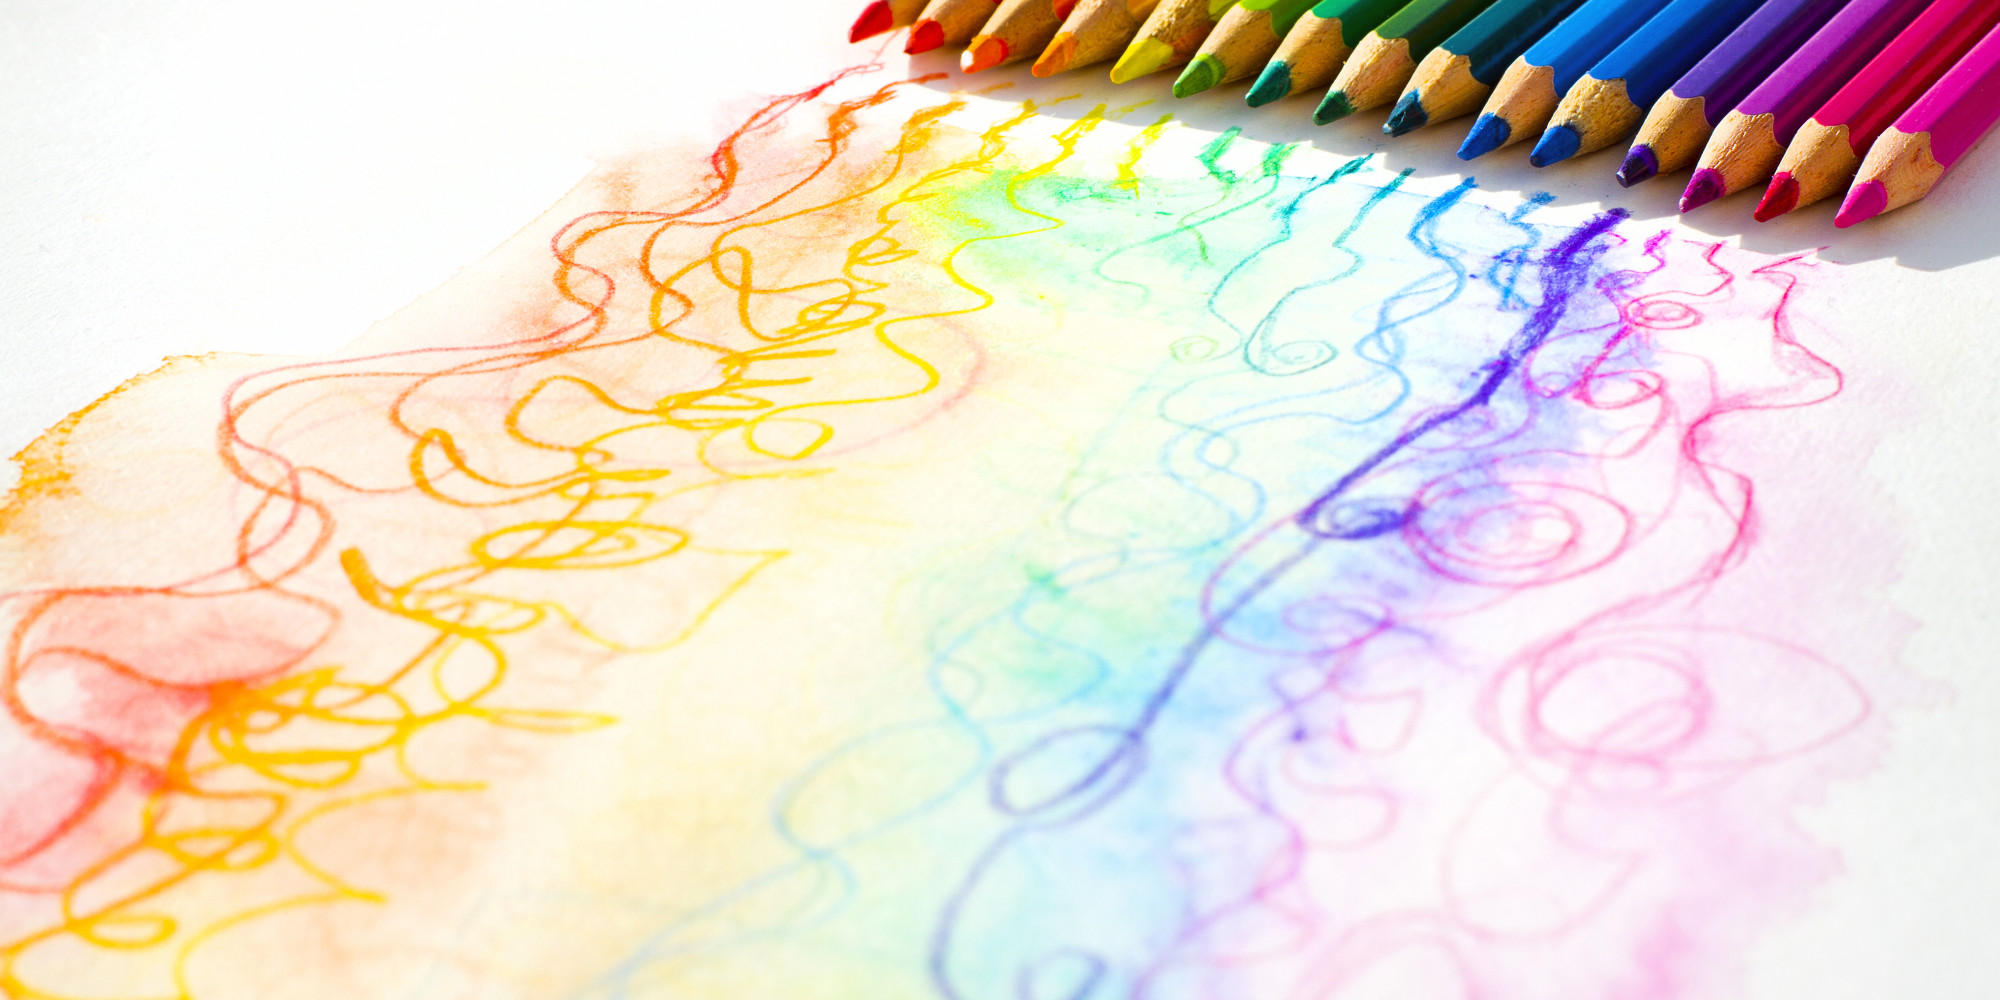 Colored Pencils For Grown Up Coloring Designing to Creativity HuffPost